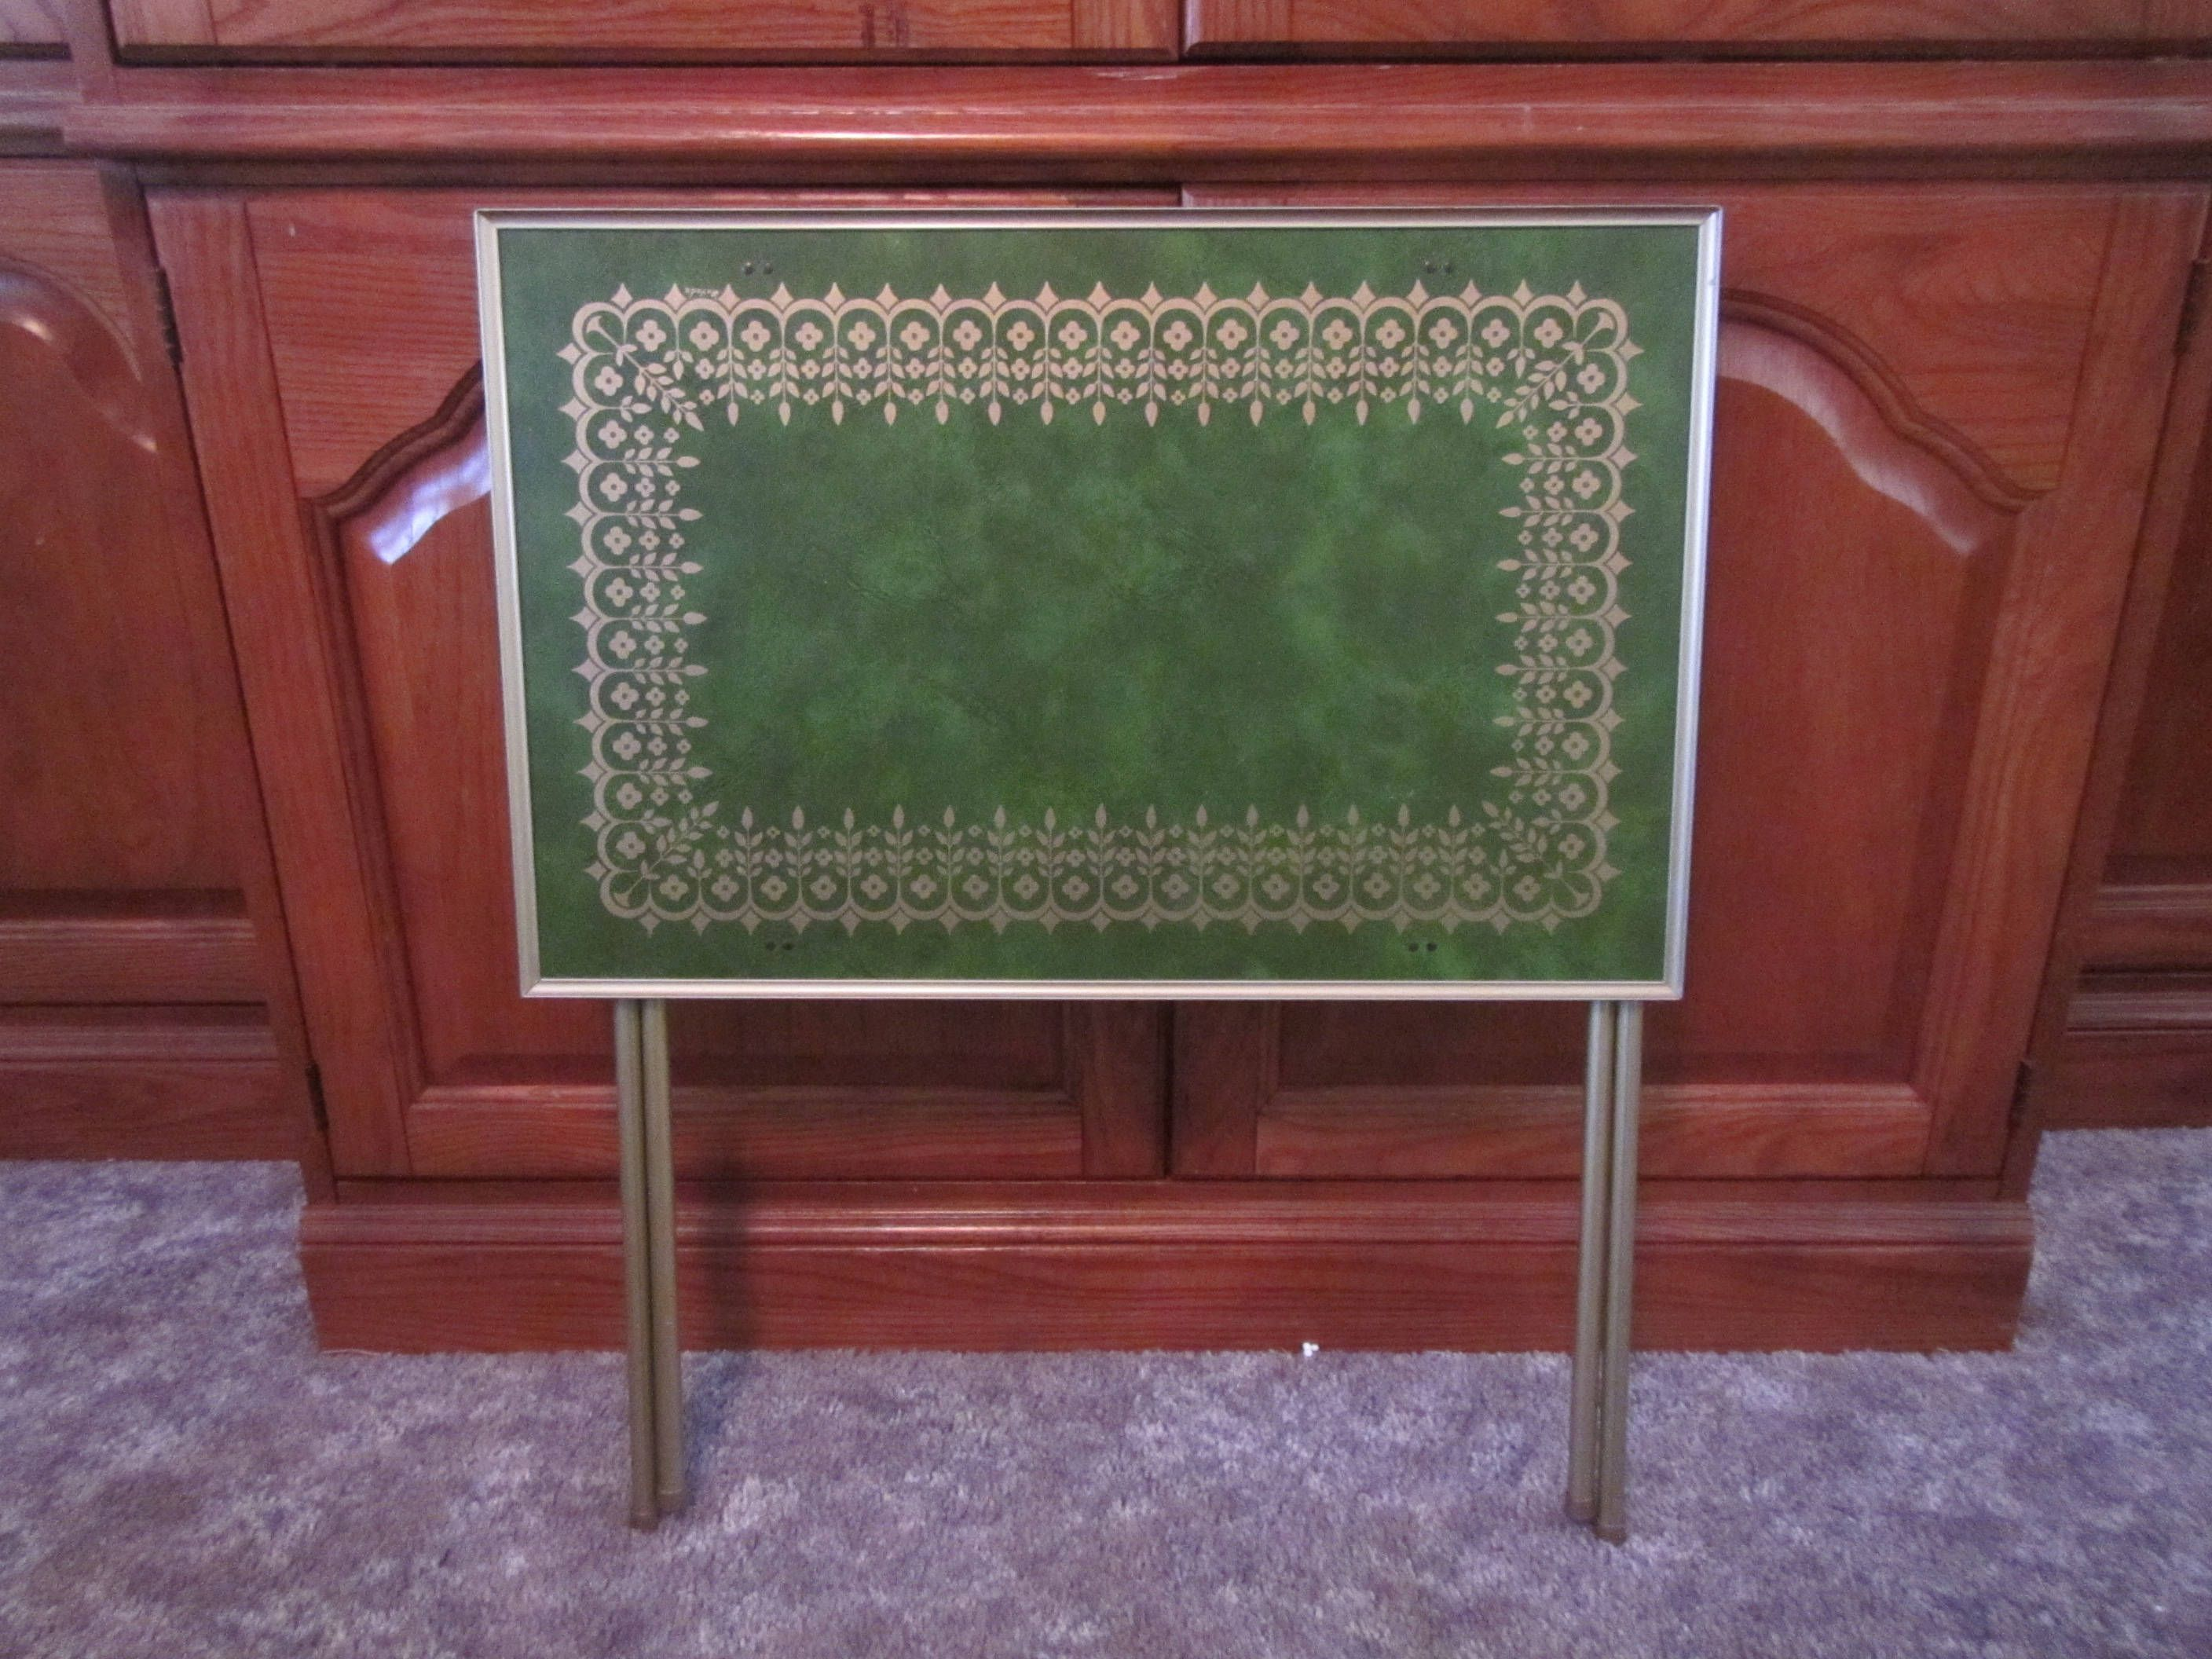 Vintage TV Tray * Folding Table Tray* Green With Gold Flower Design * TV  Table